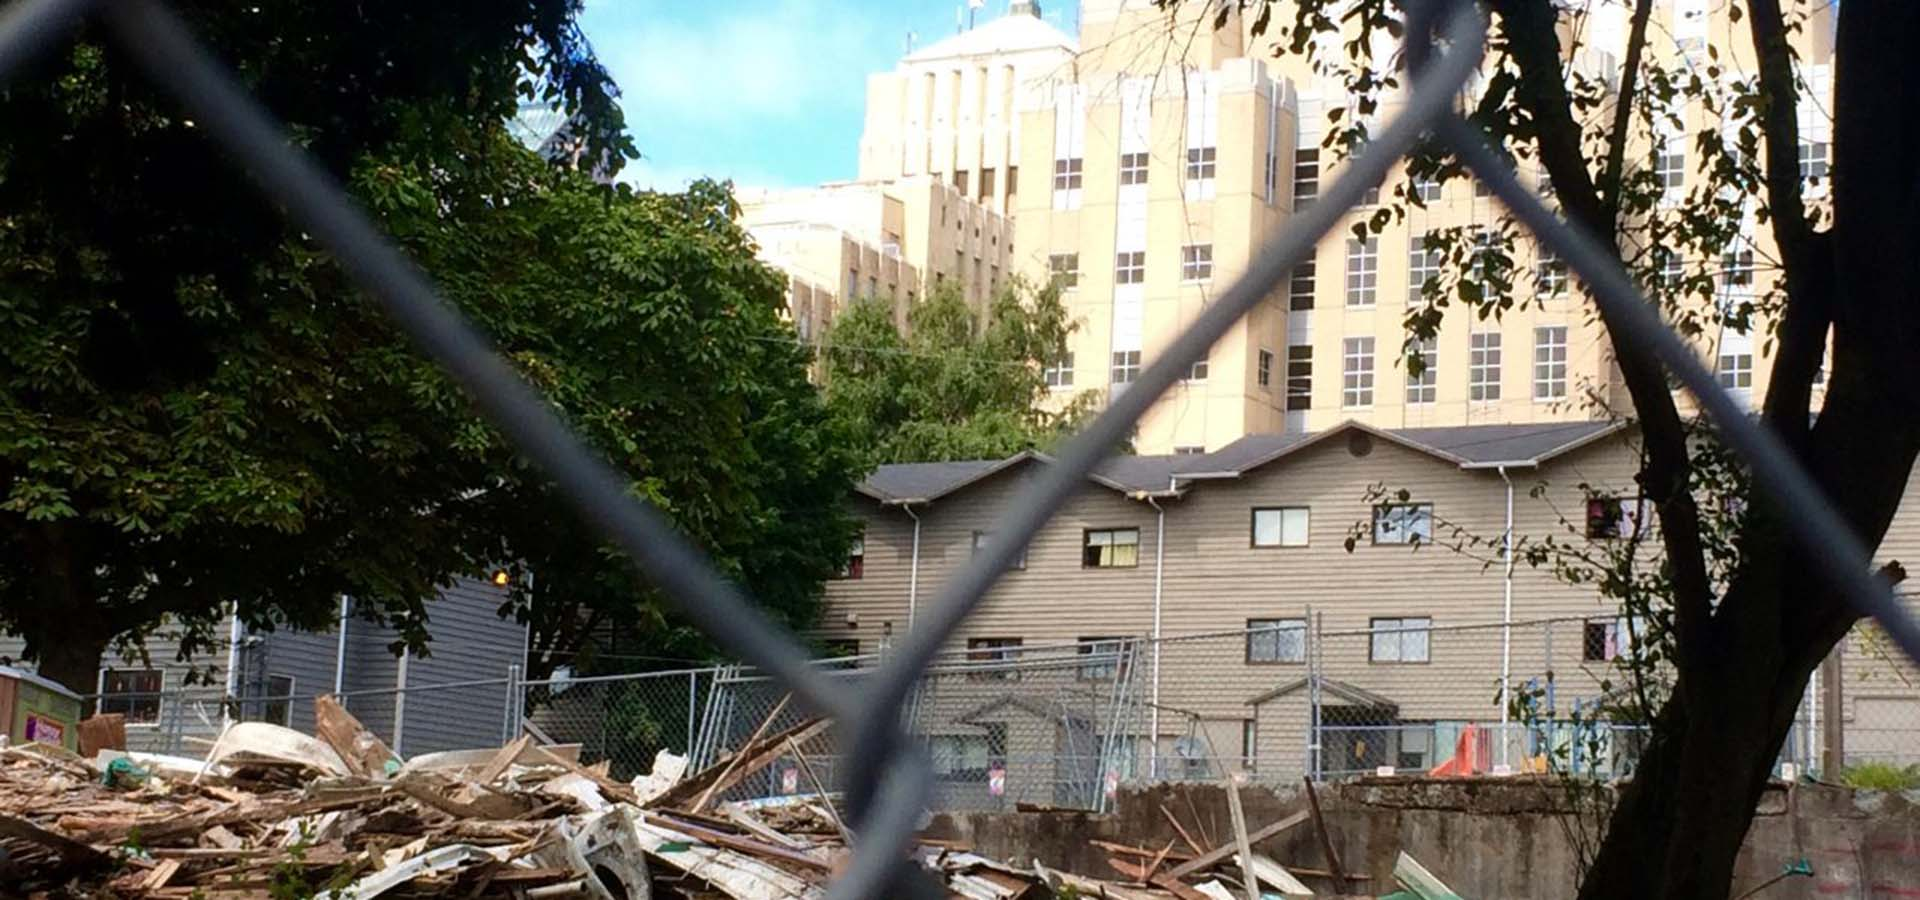 Demolition of a building with the debris on the ground.